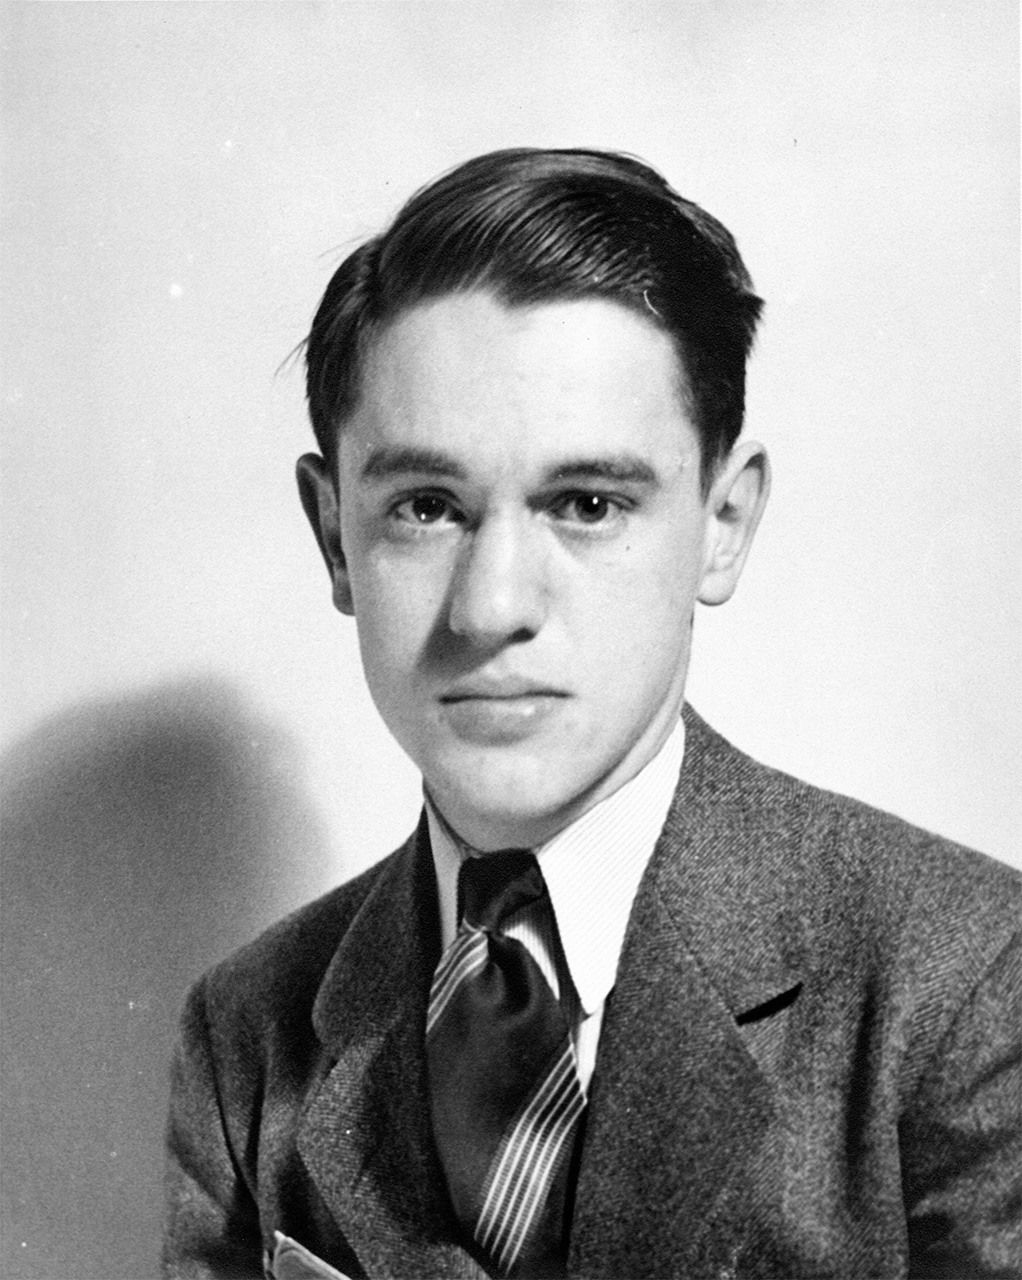 Donald Keene, aged 16, around the time that he entered Columbia University in 1938. (Courtesy Donald Keene Center Kashiwazaki)